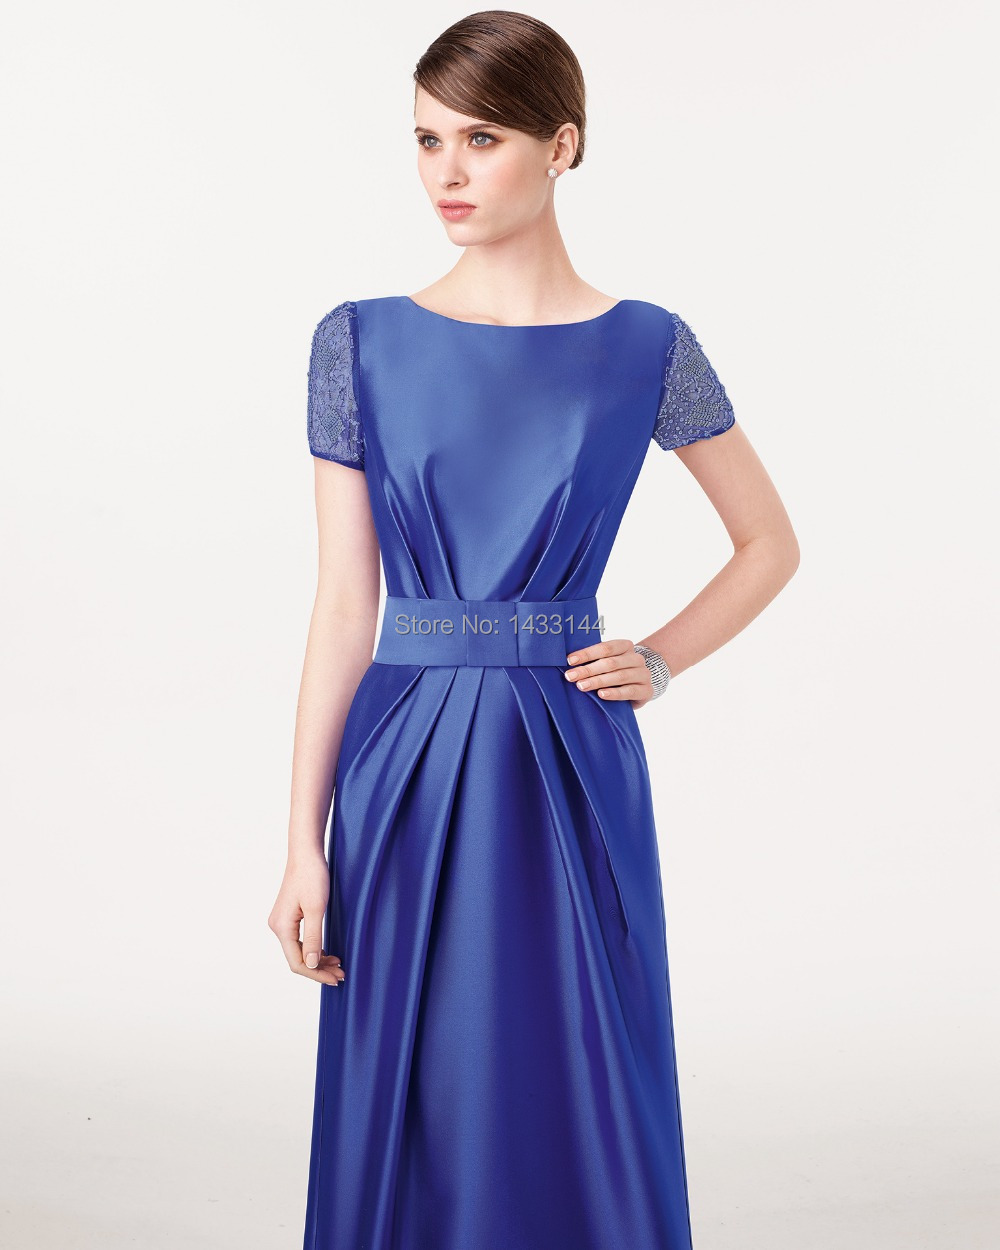 New arrival 2015 elegant royal blue evening dresses beads for Cocktail dress with sleeves for wedding